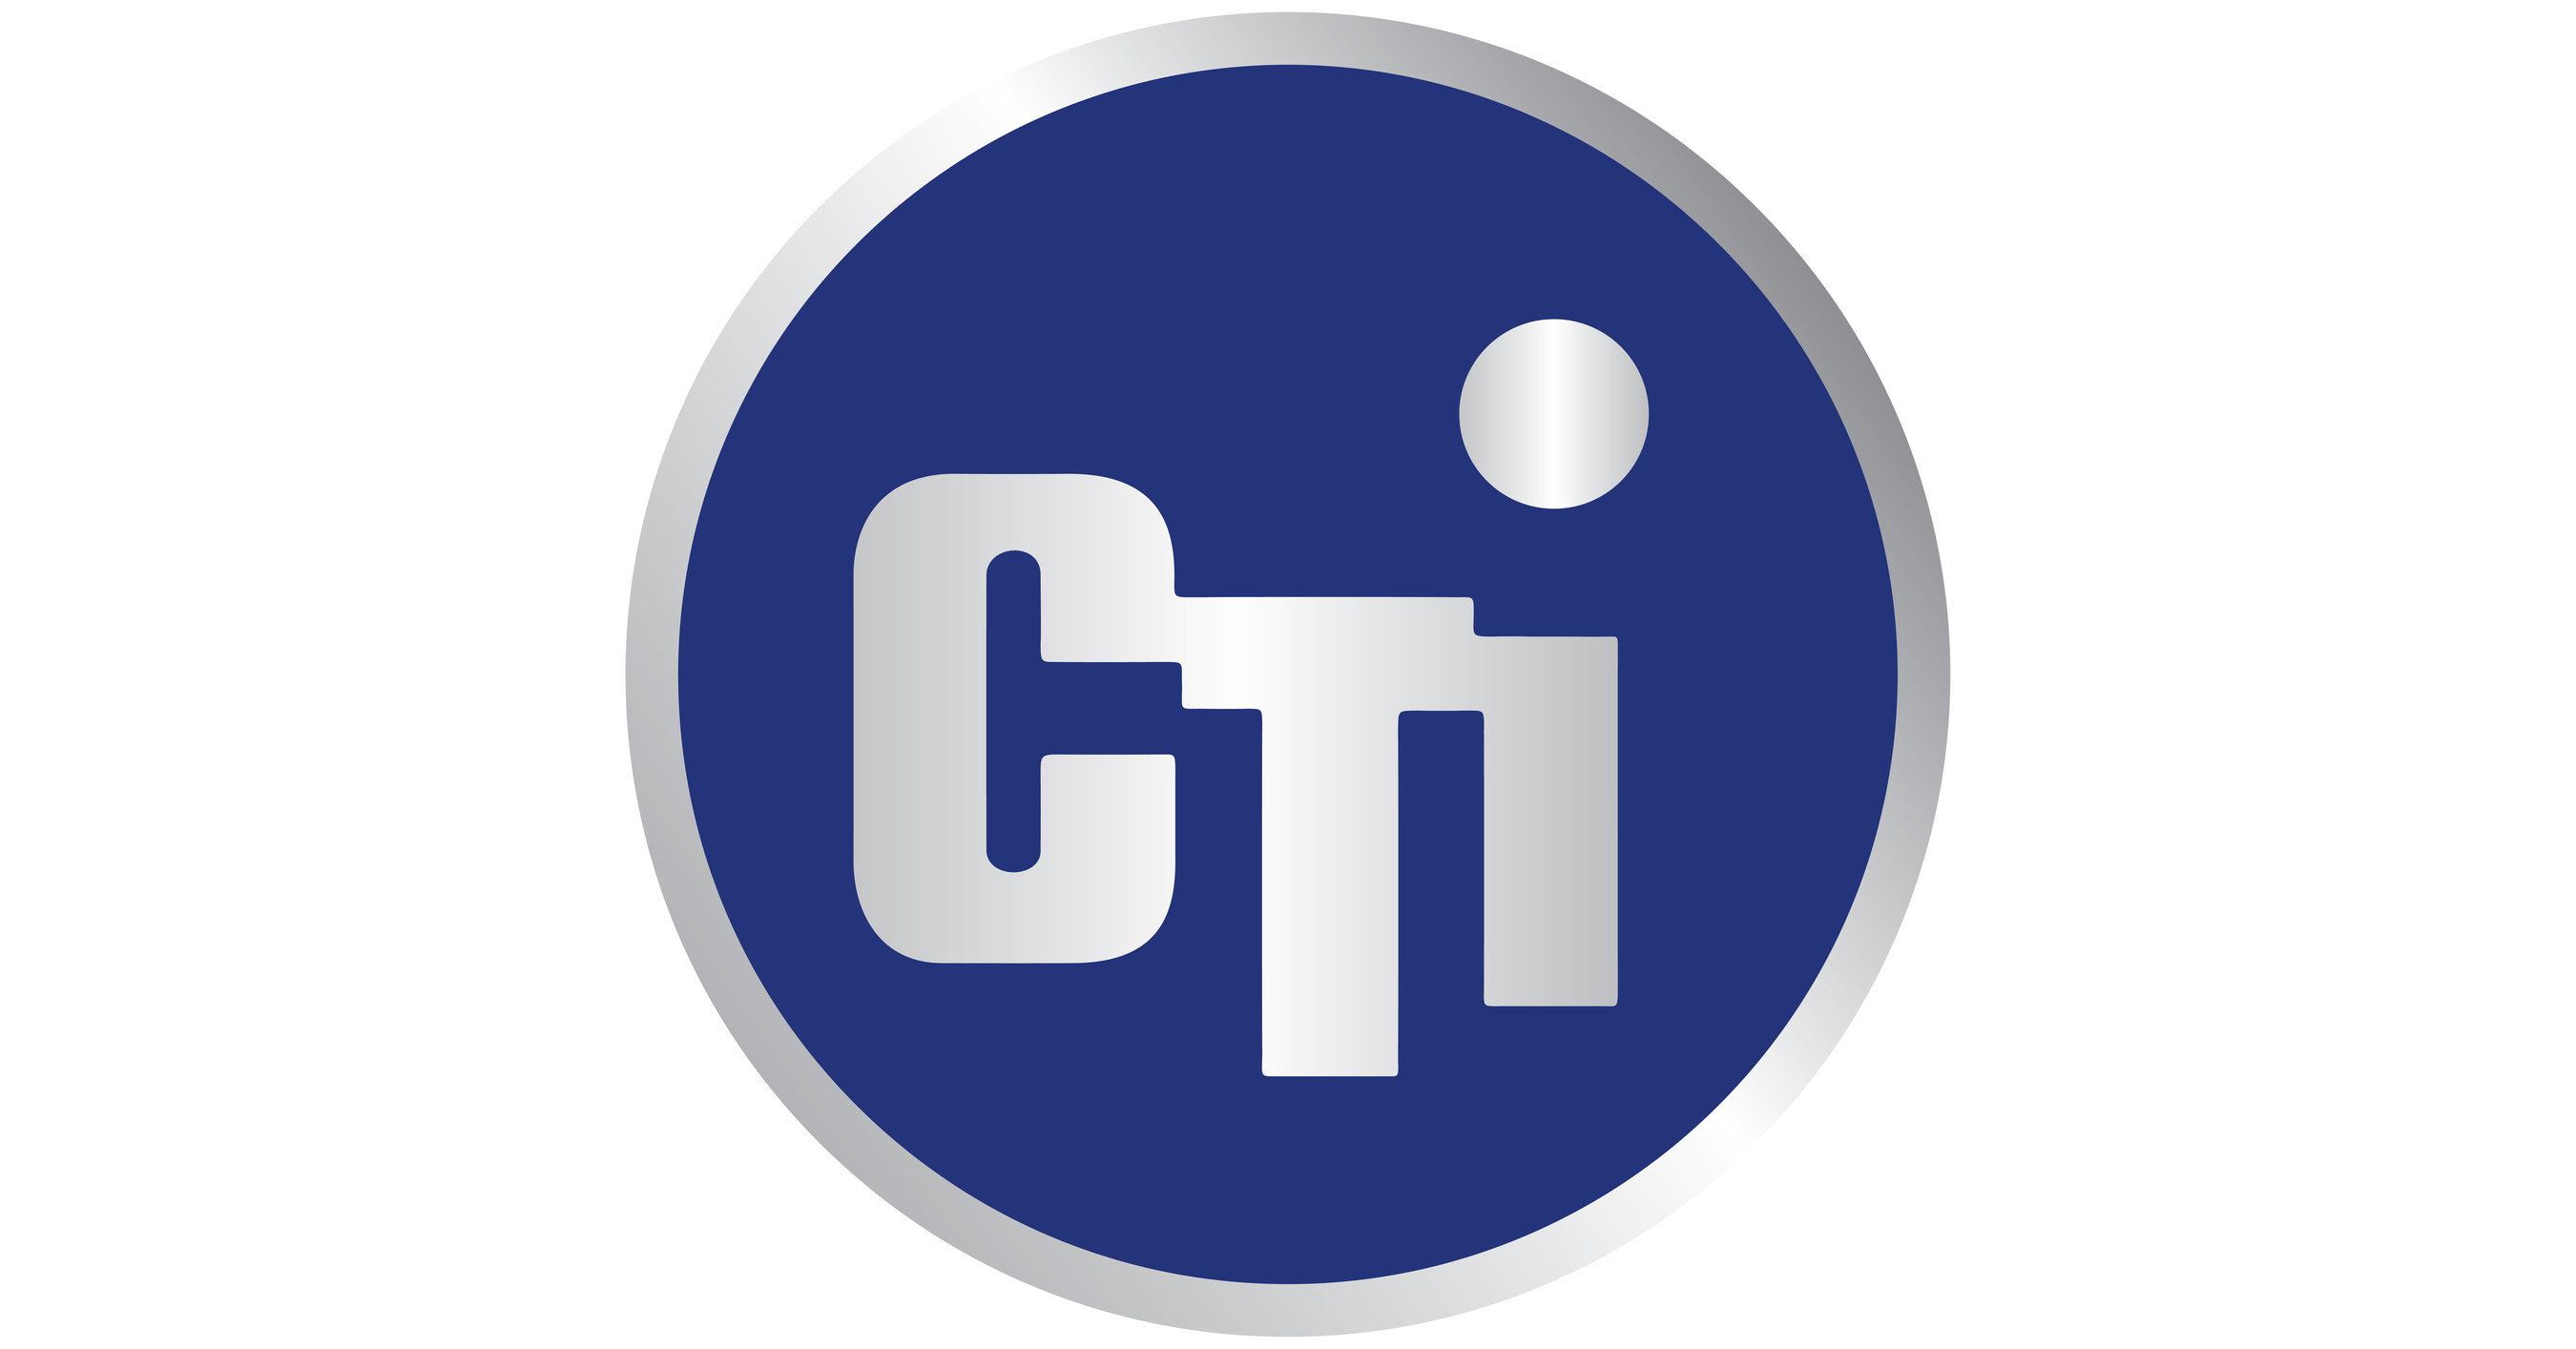 cti industries corporation reports results for full year